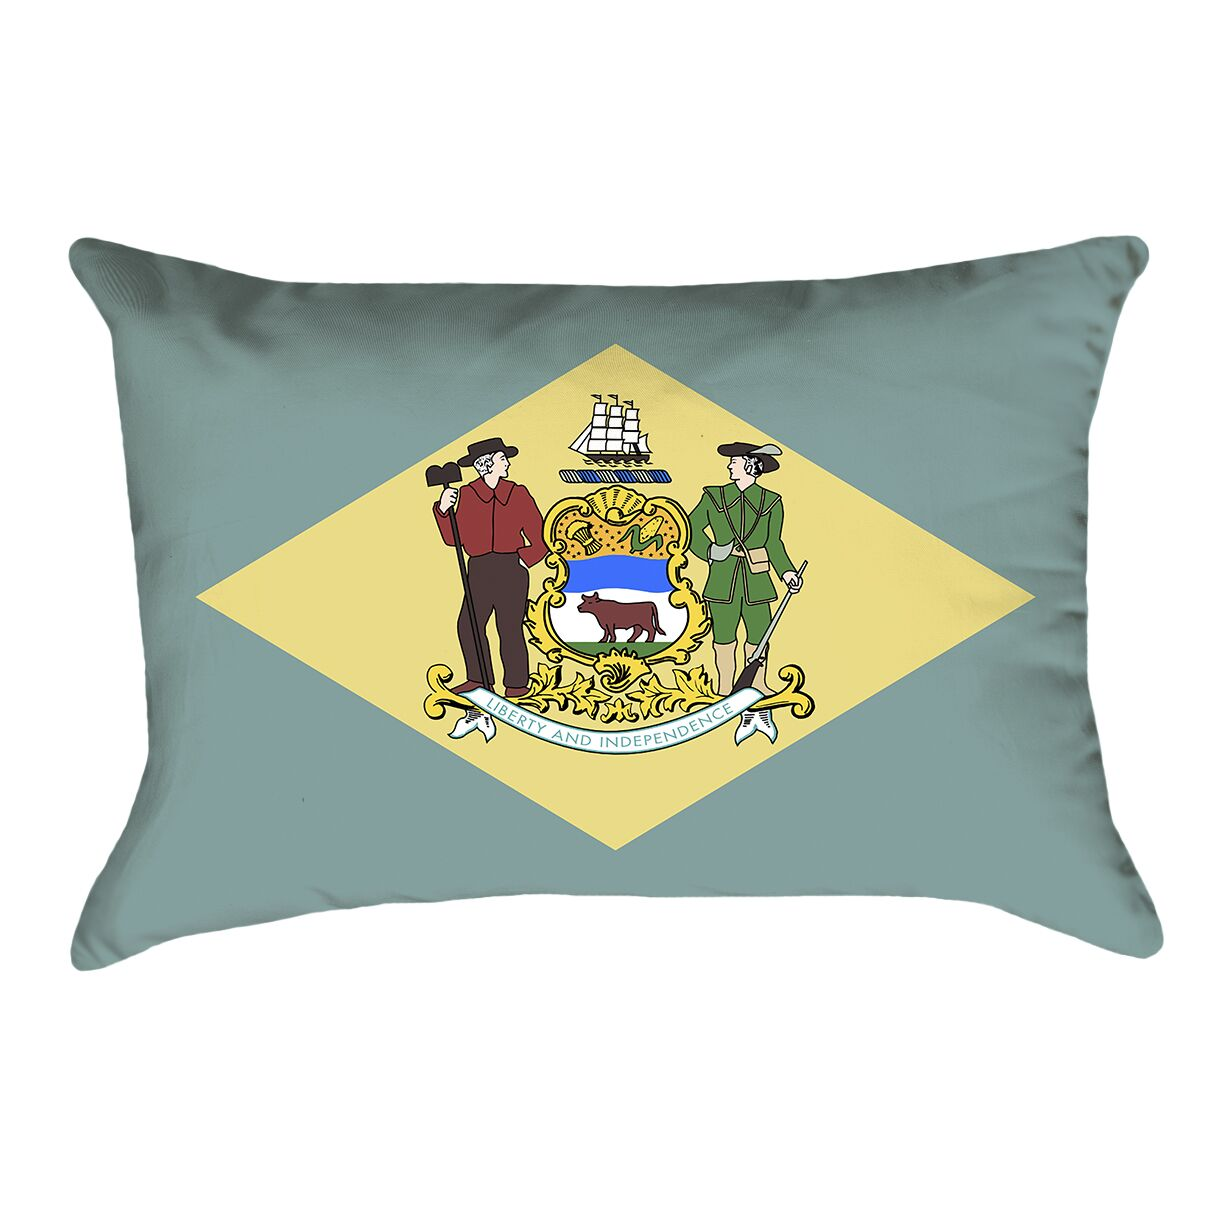 Centers Delaware Flag Lumbar Pillow Material/Product Type: Faux Linen Double Sided Print/Lumbar Pillow